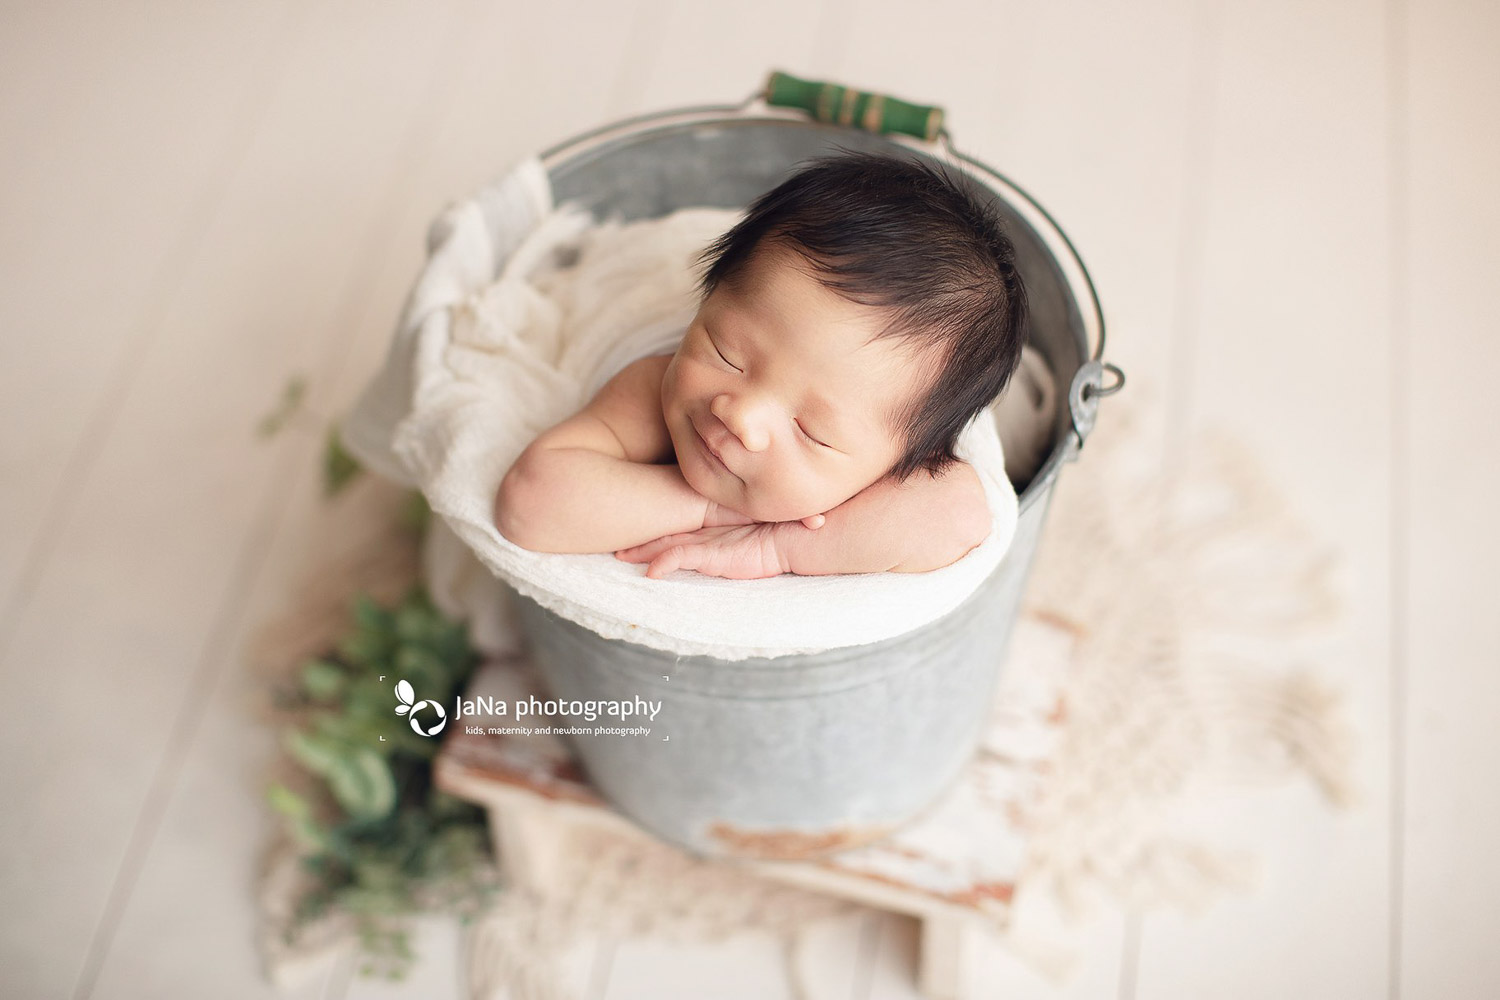 posing babies in a gray and white bucket | jana photography| VanVancouver BC